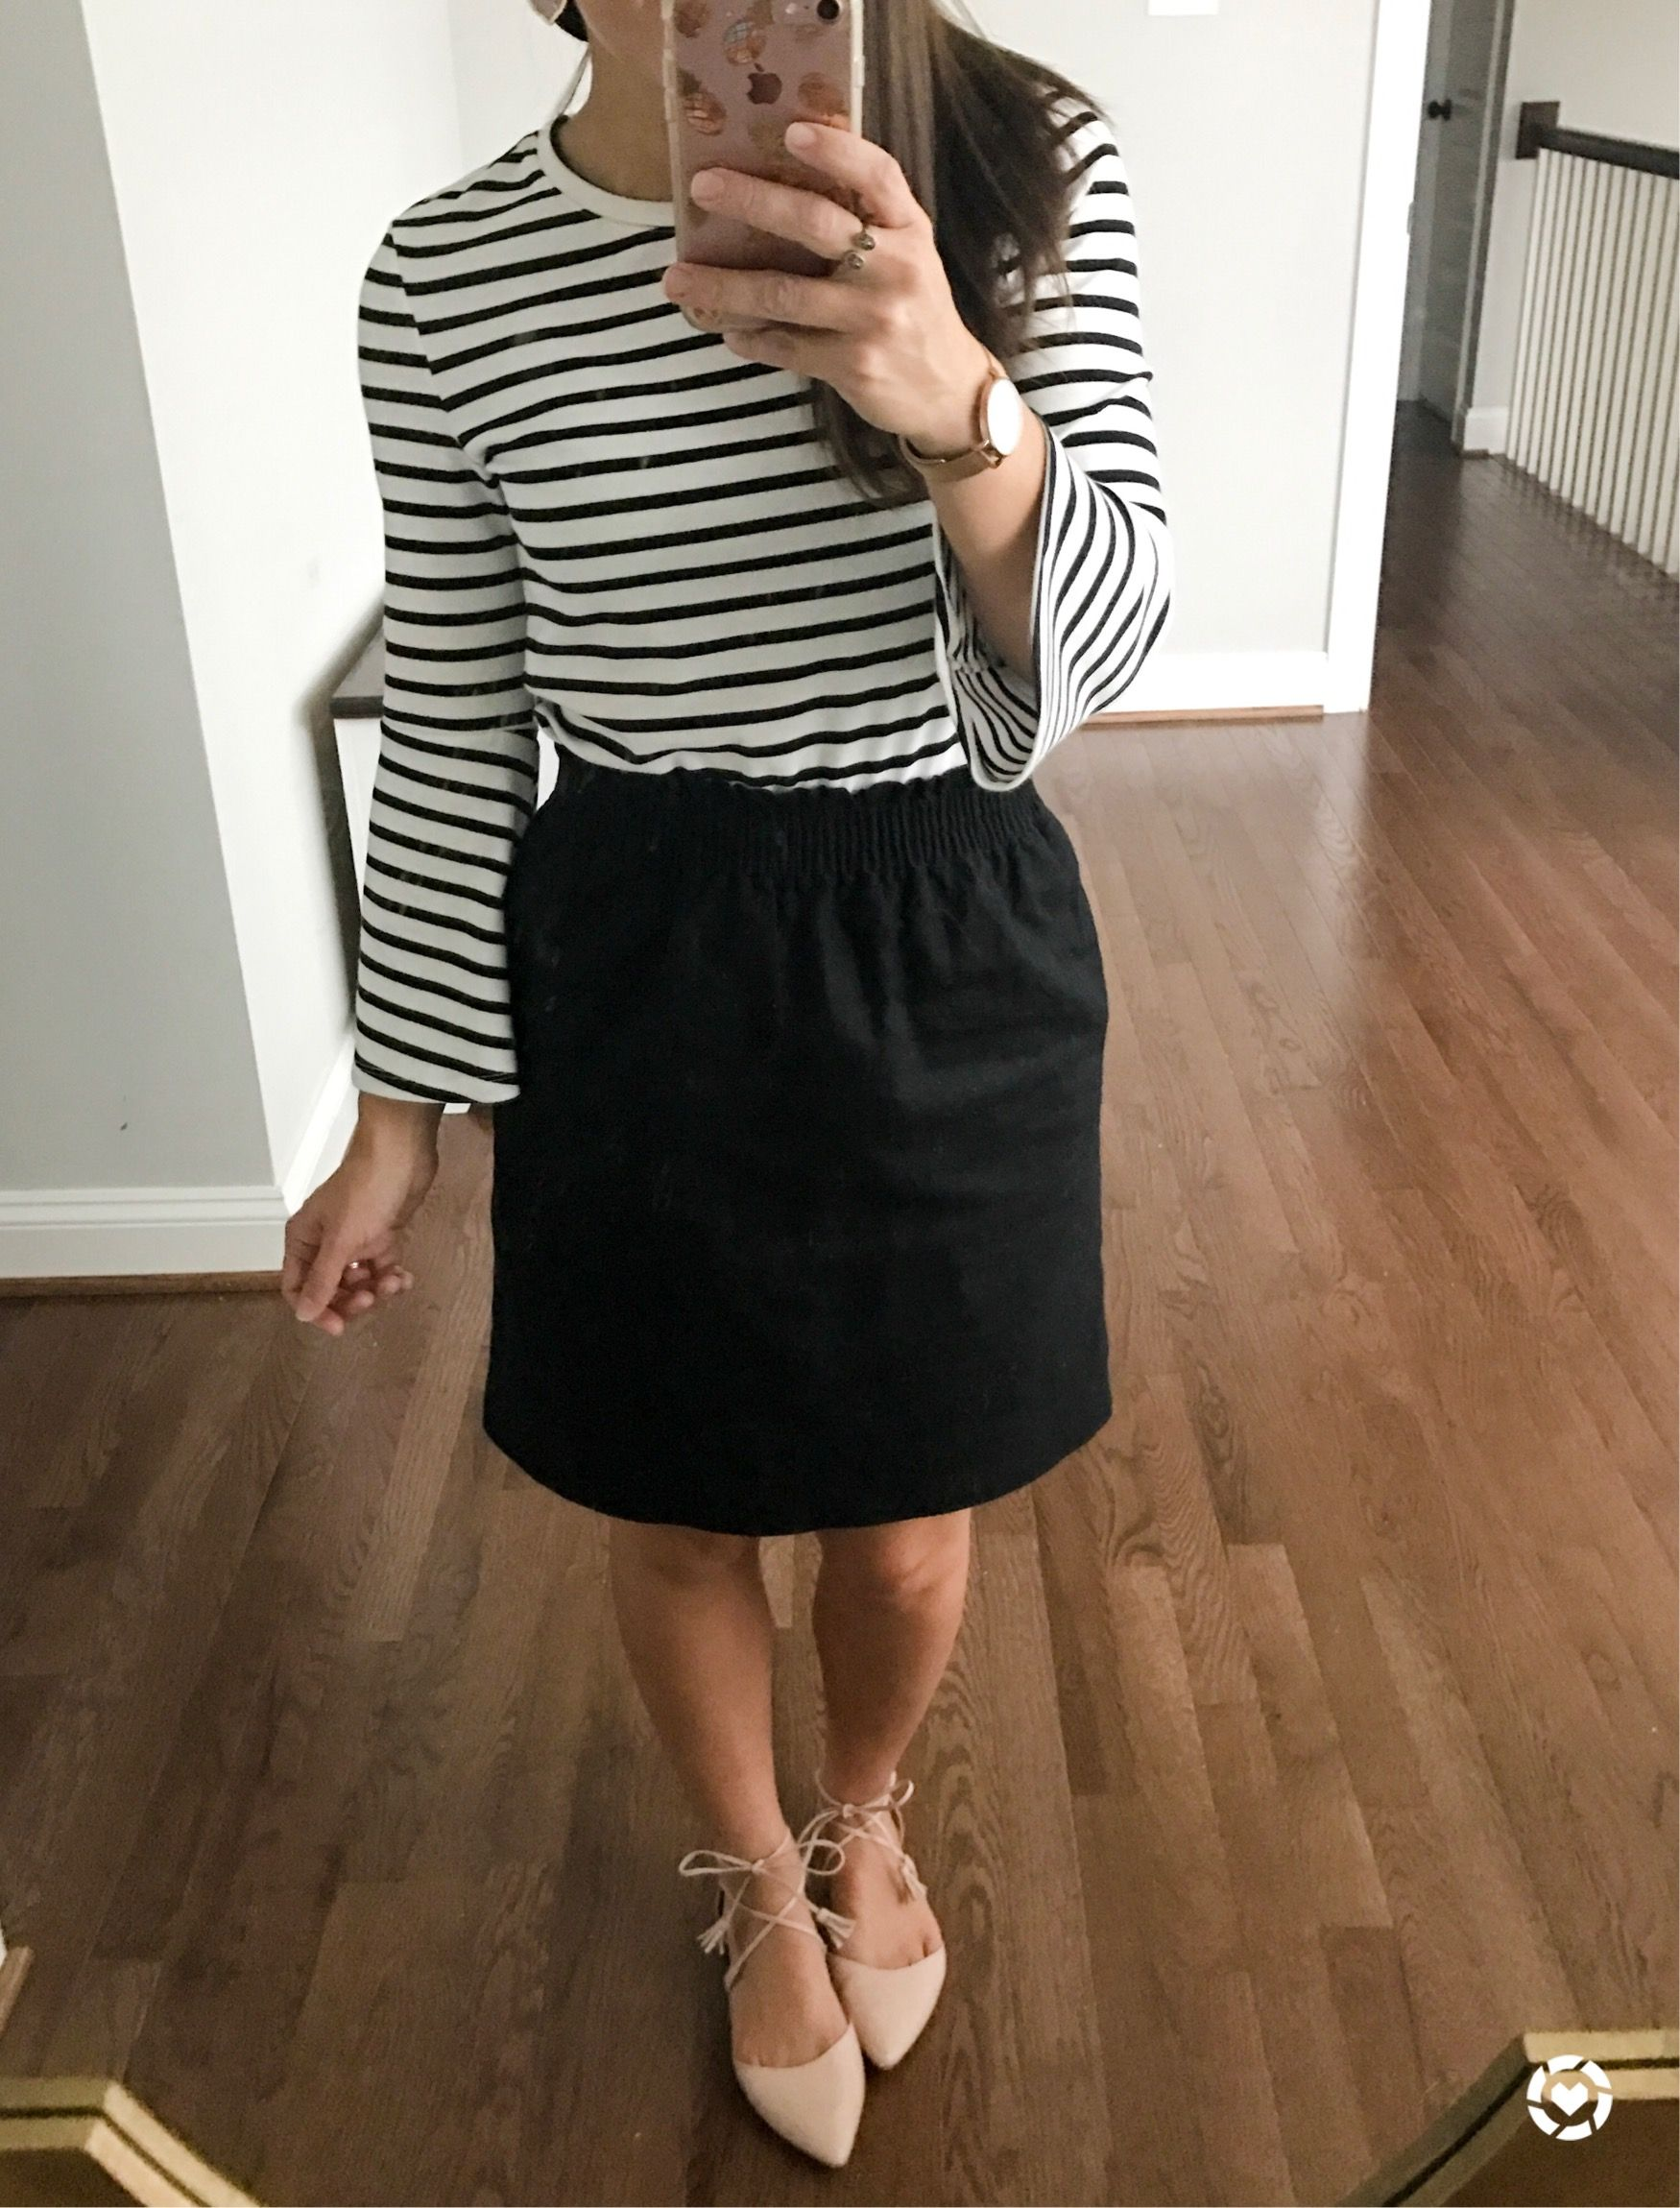 a70b1e6f31 J. crew sidewalk skirt and old navy bell sleeve top, with blush ballet  flats. Fall 2017 outfit. Petite outfit. #fallfashion #petitefashion #fashion  # ...